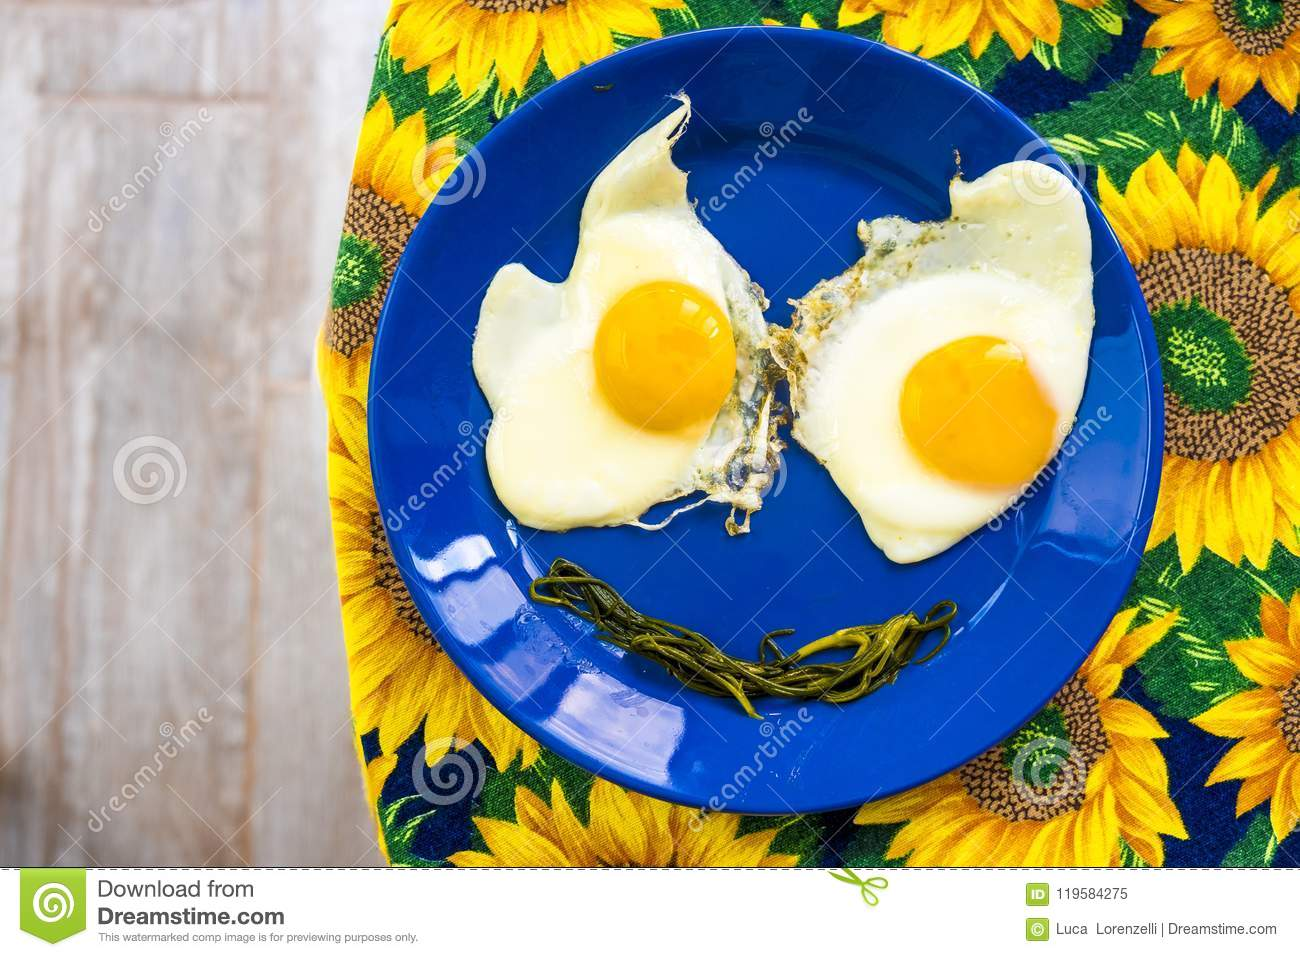 Funny food face smile fried eggs eyes vegetable mouth blue dish